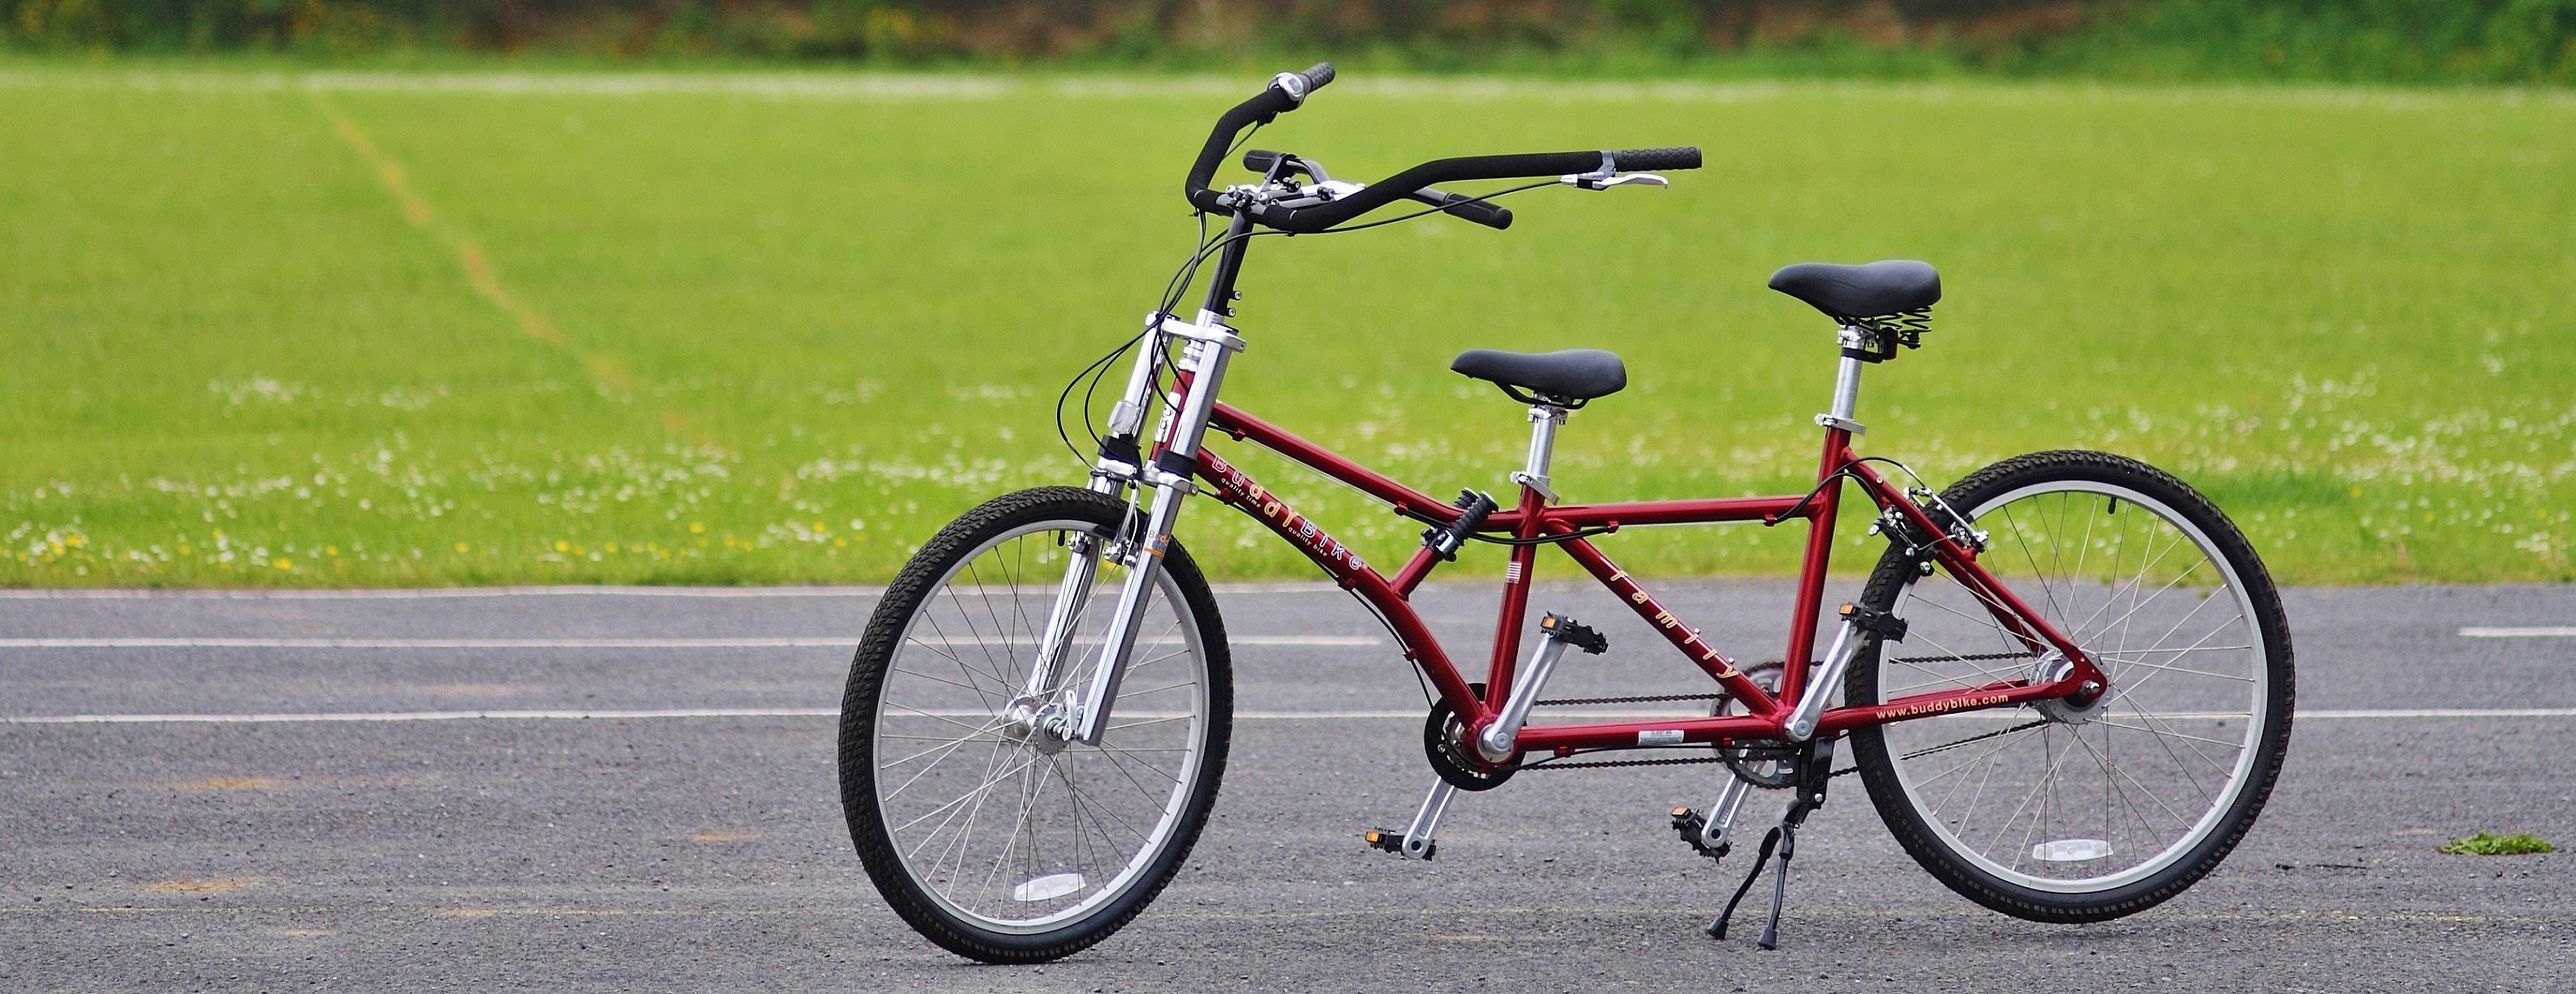 Tandem Cycles Bikeability Wales